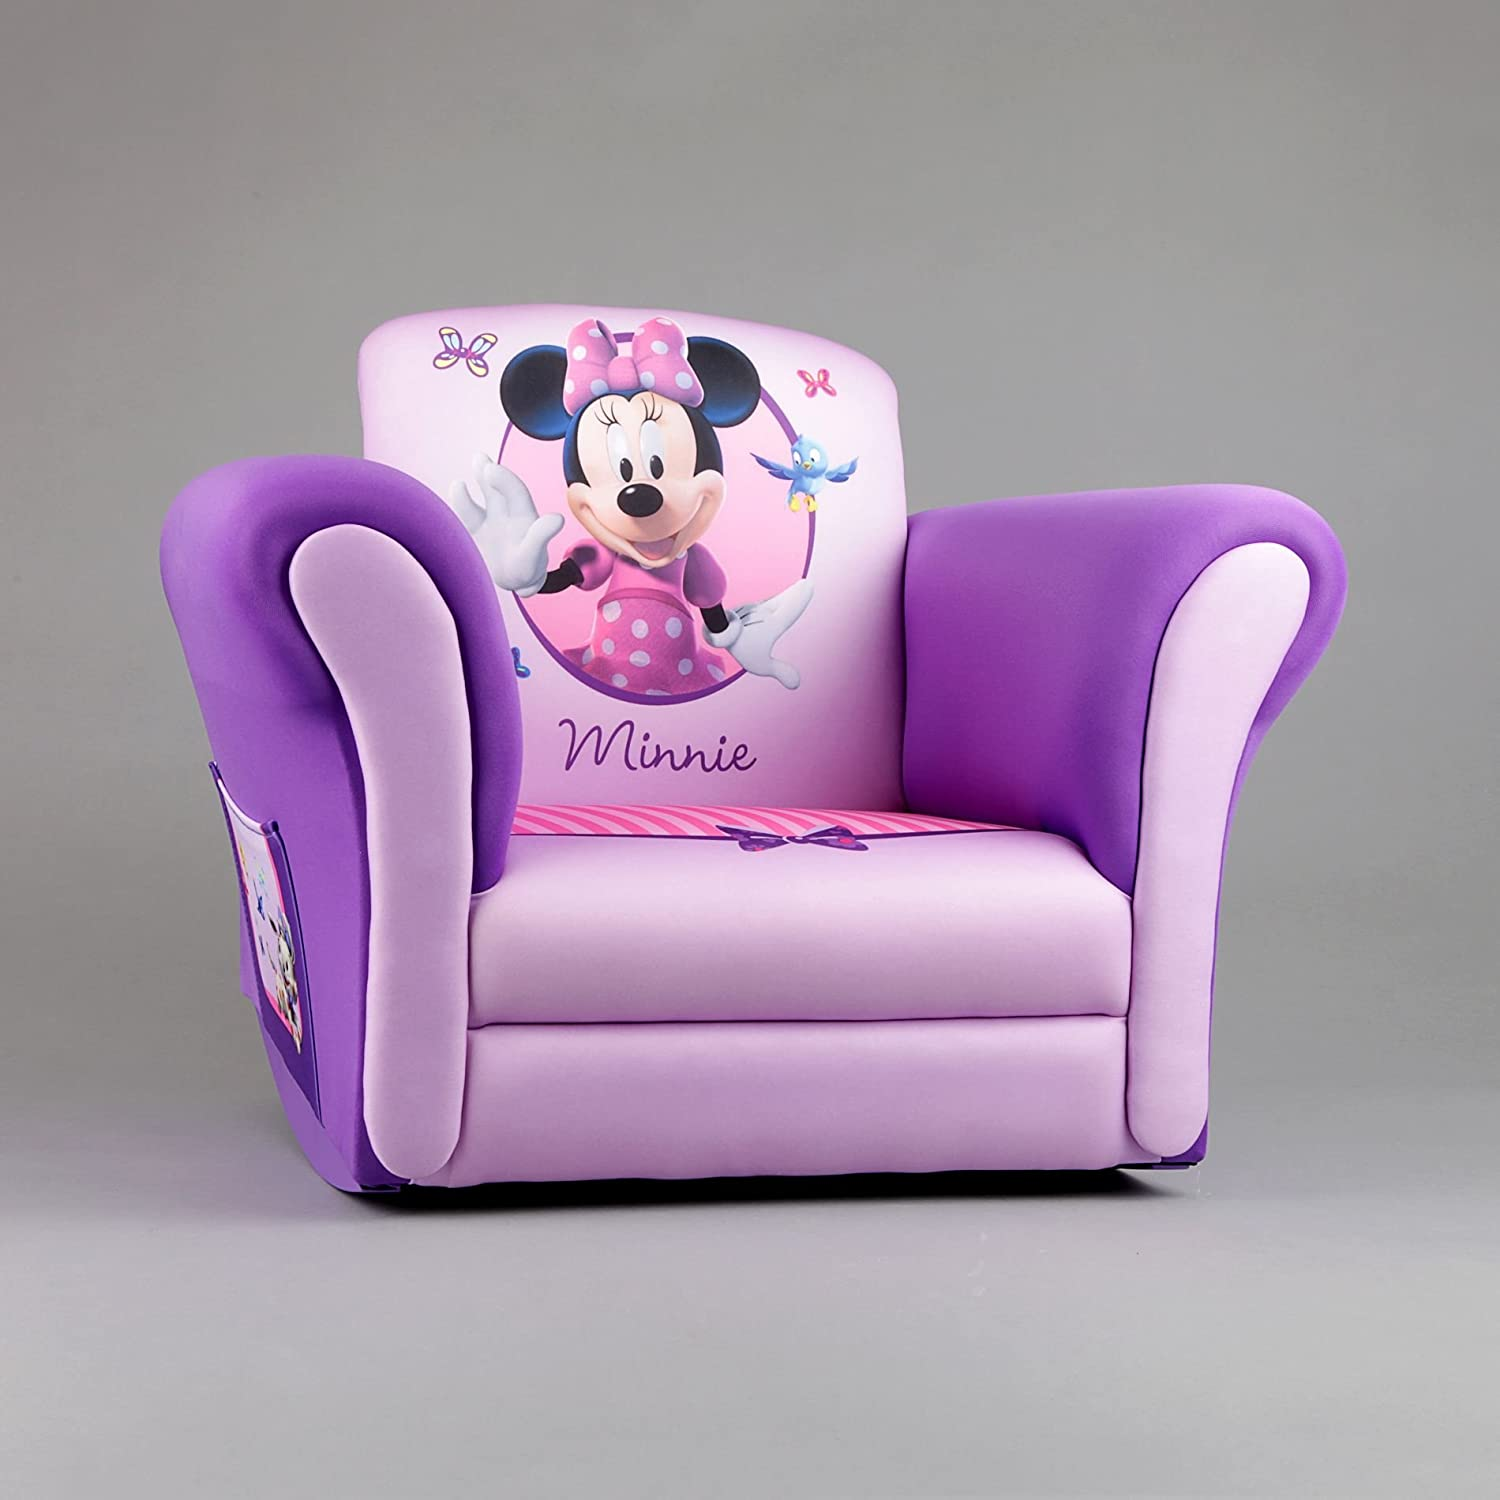 Minnie Mouse Upholstered Rocking Chair